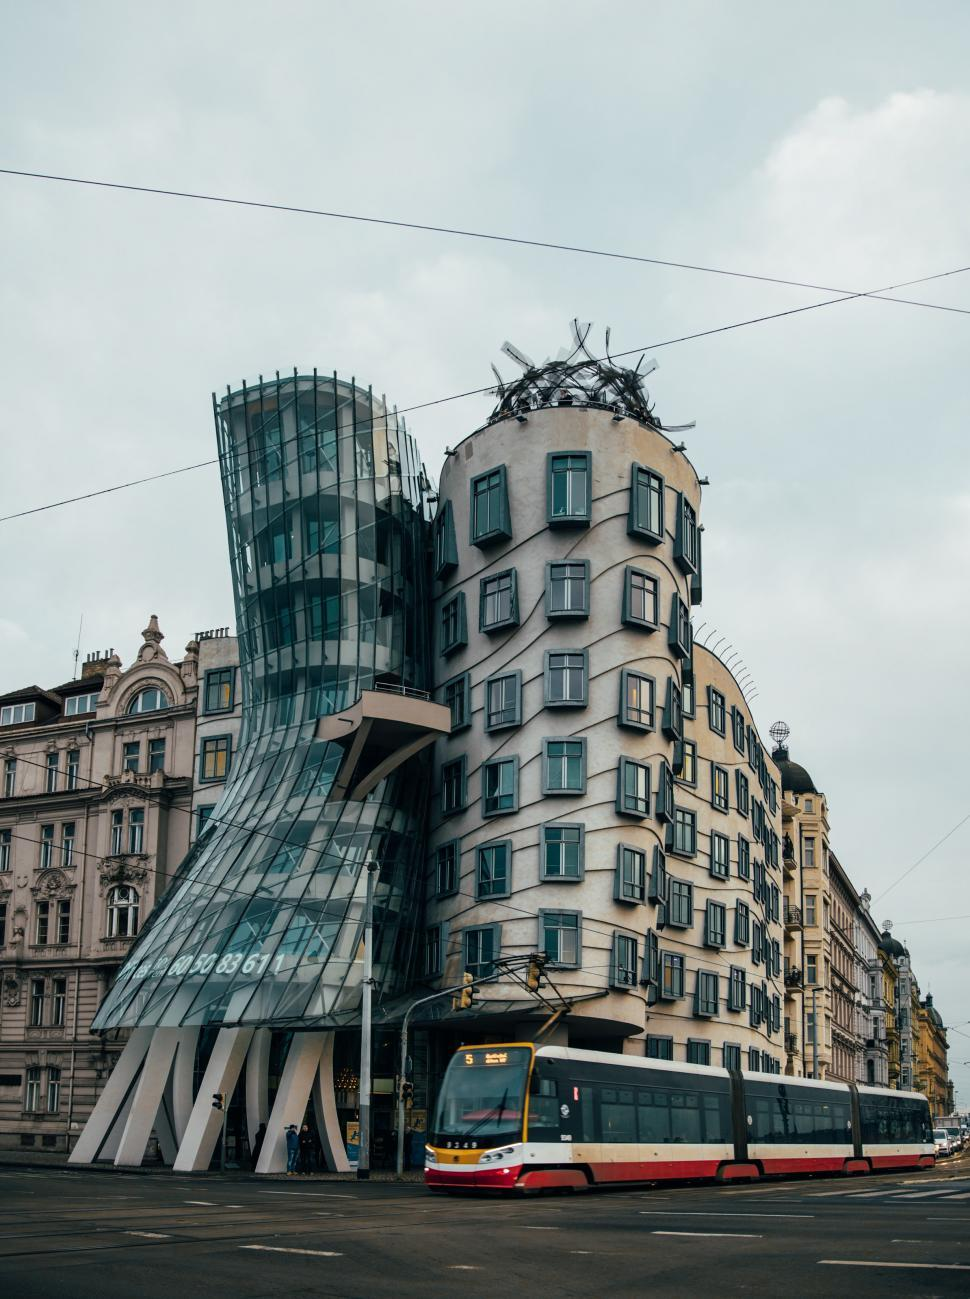 Download Free Stock HD Photo of Dancing House in Prague with Train Online